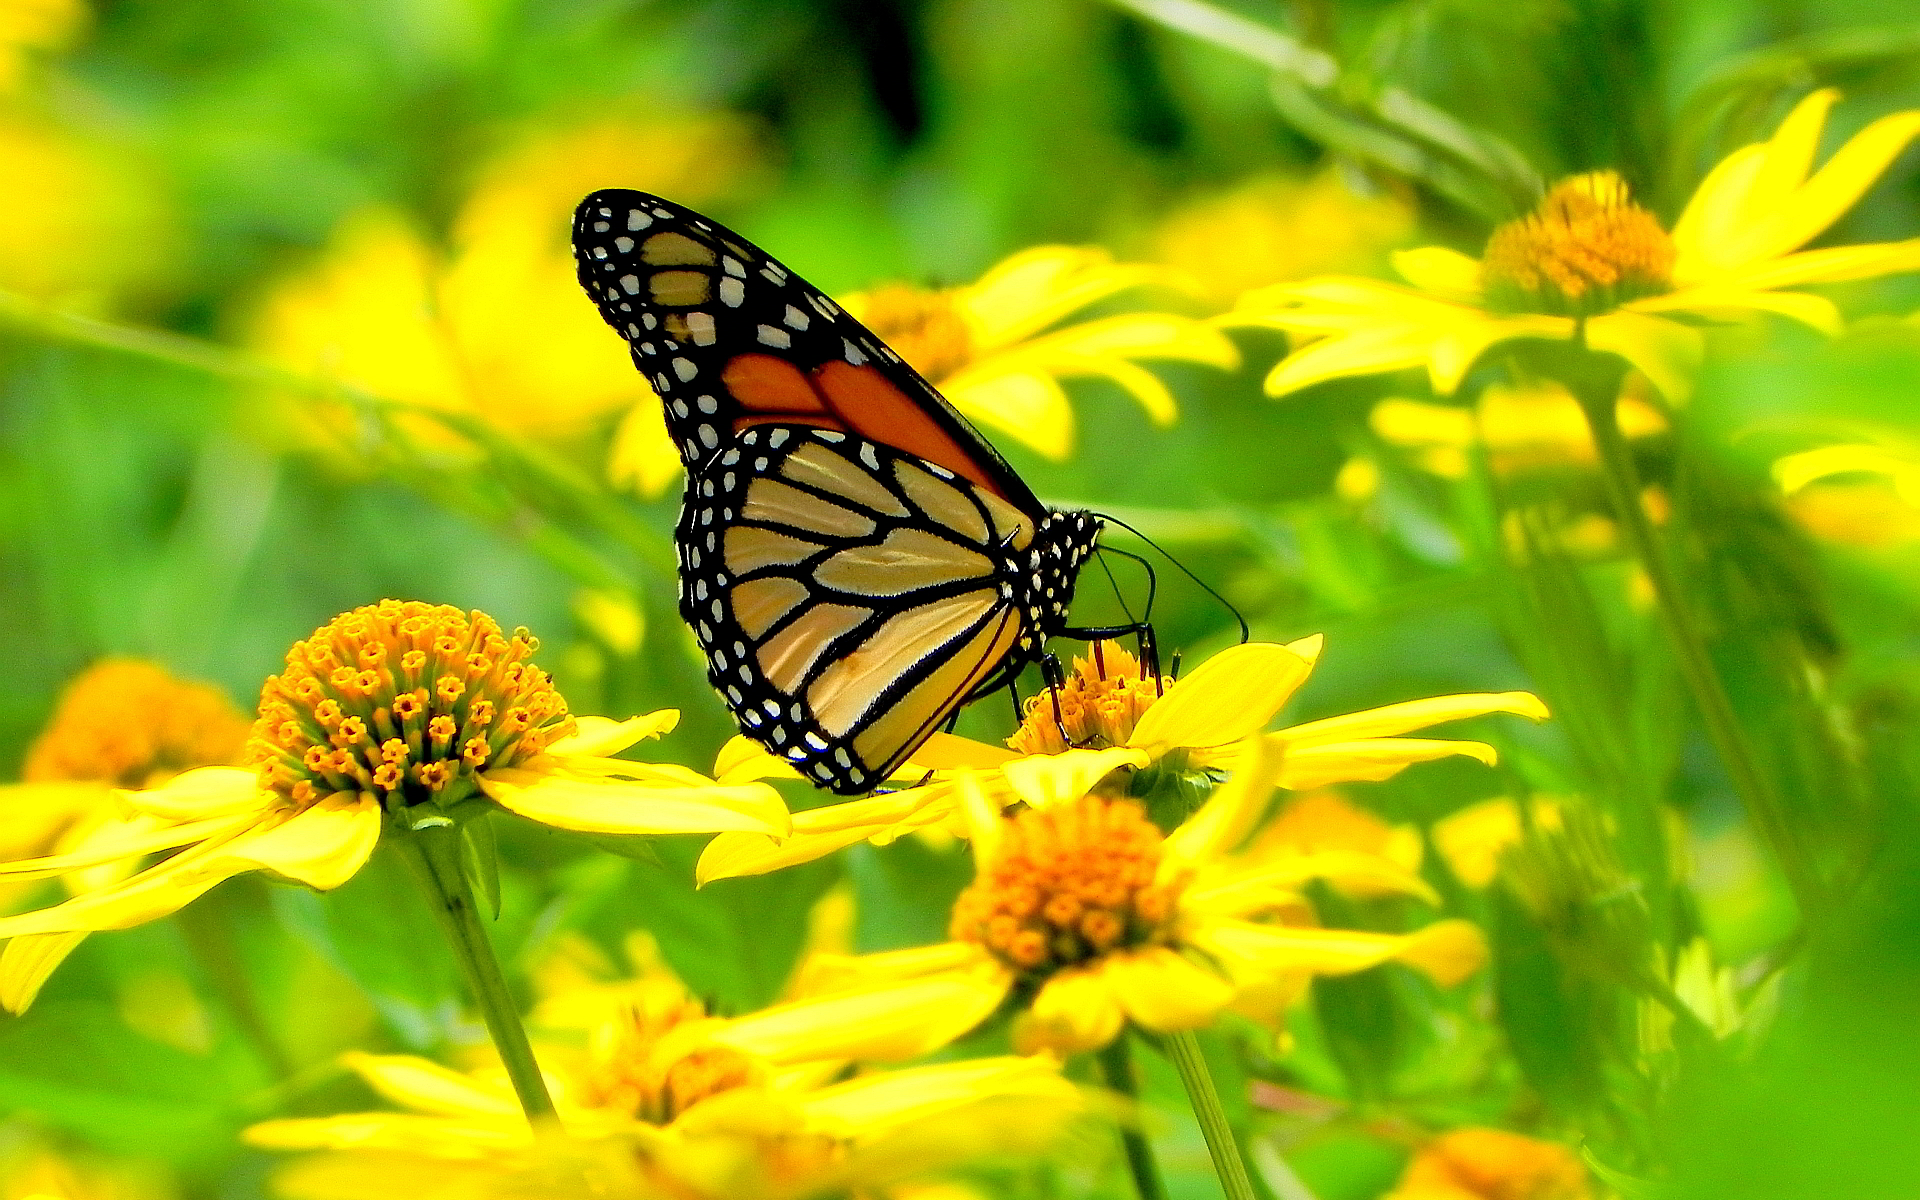 butterfly hd live wallpaper download